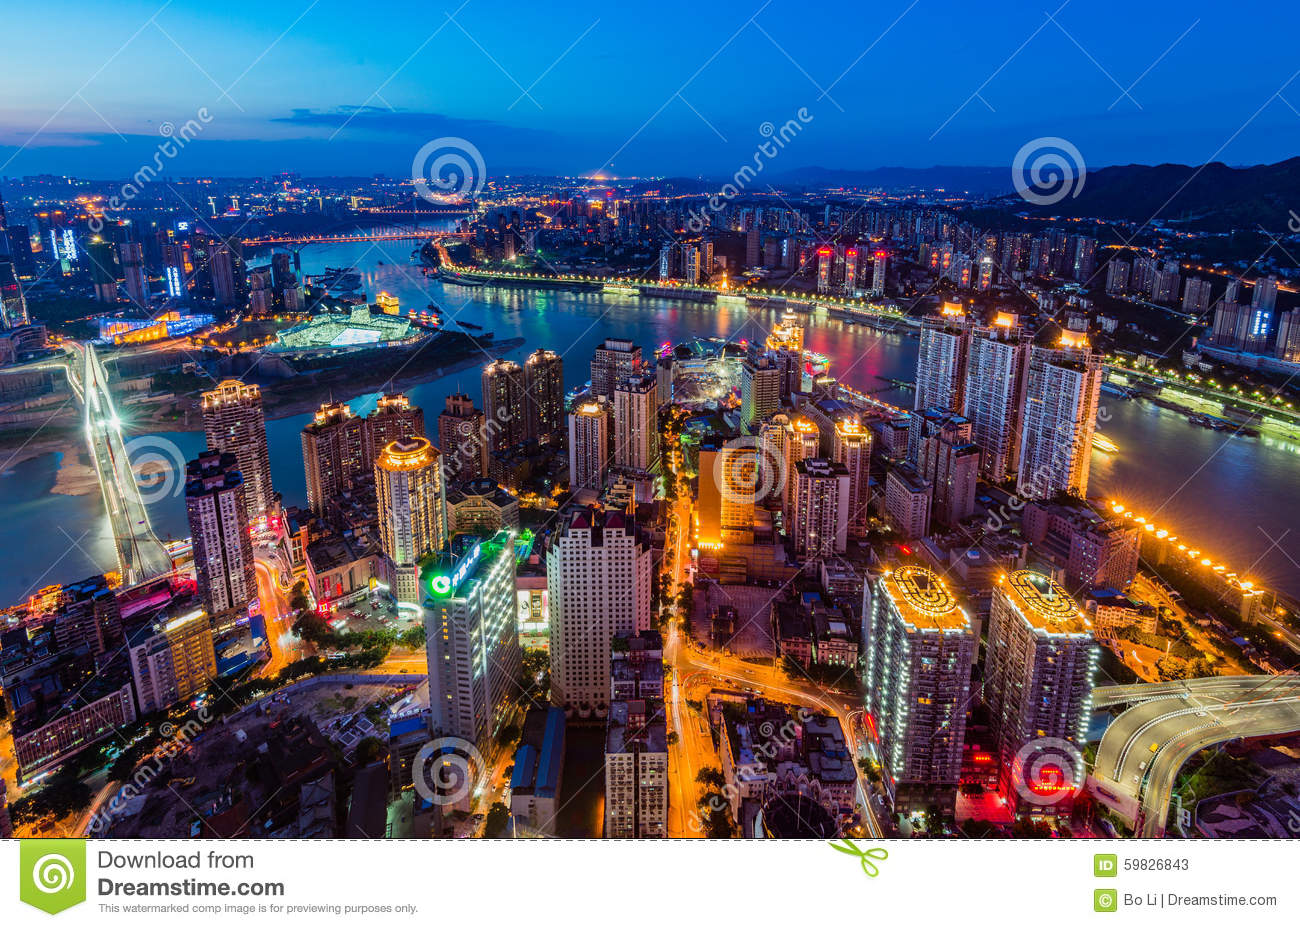 The night scenes of Chongqing